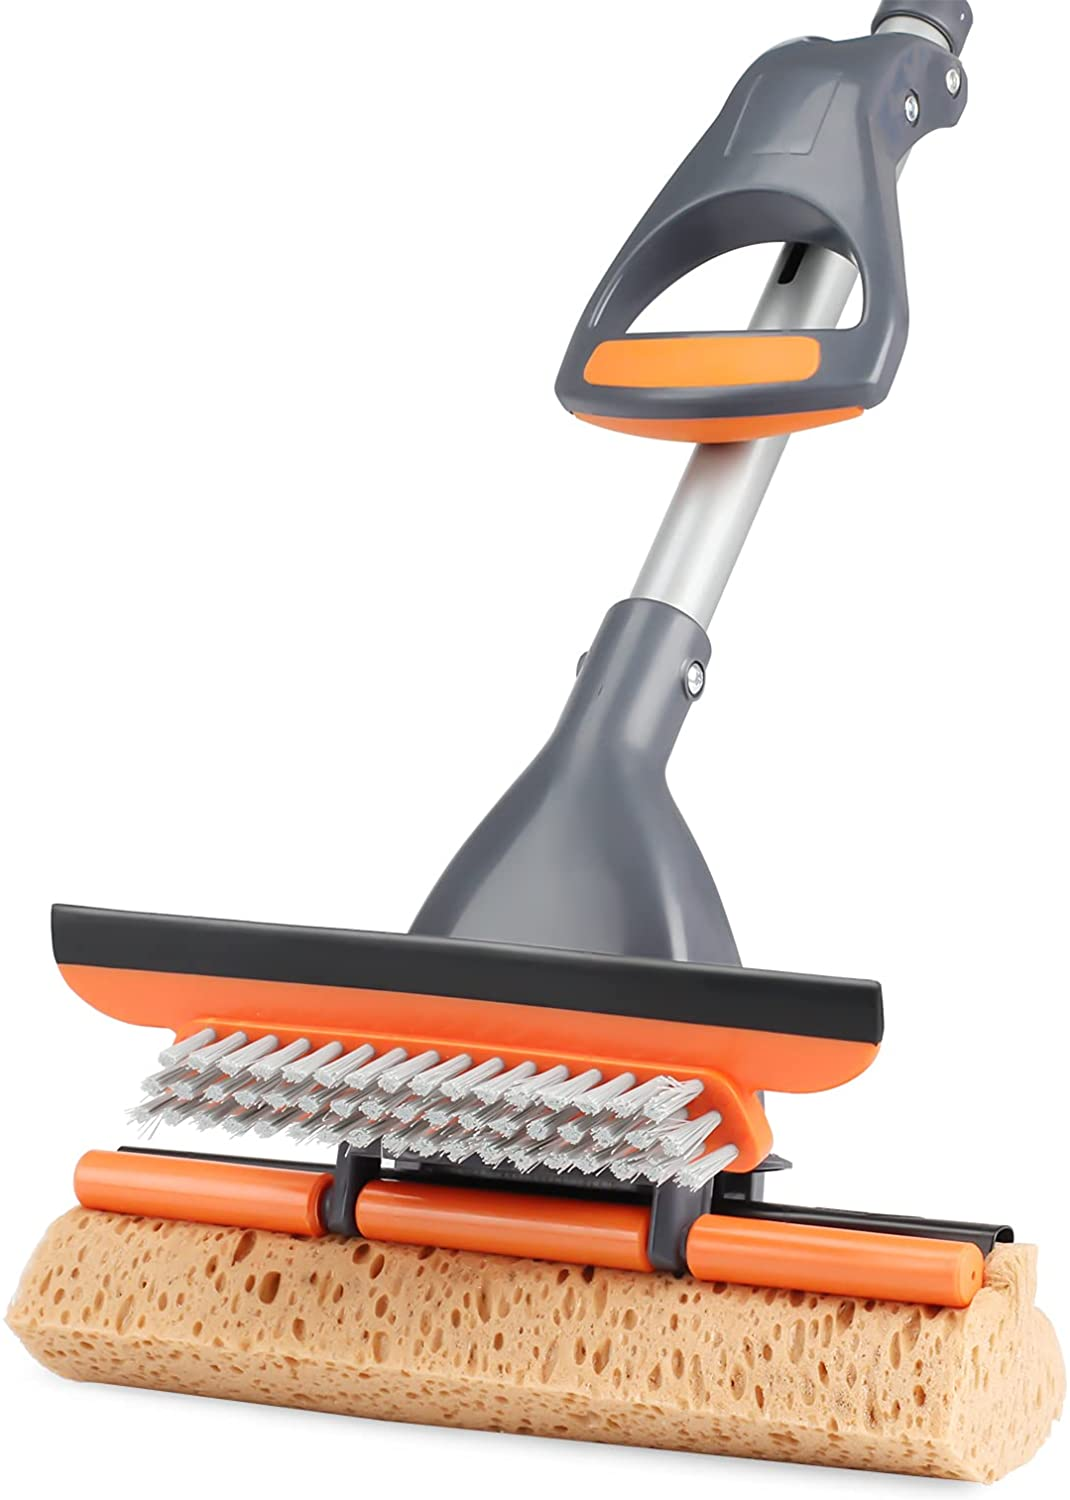 10 Best Mops for Cleaning Vinyl Plank Floors: 2021 Buying Guide